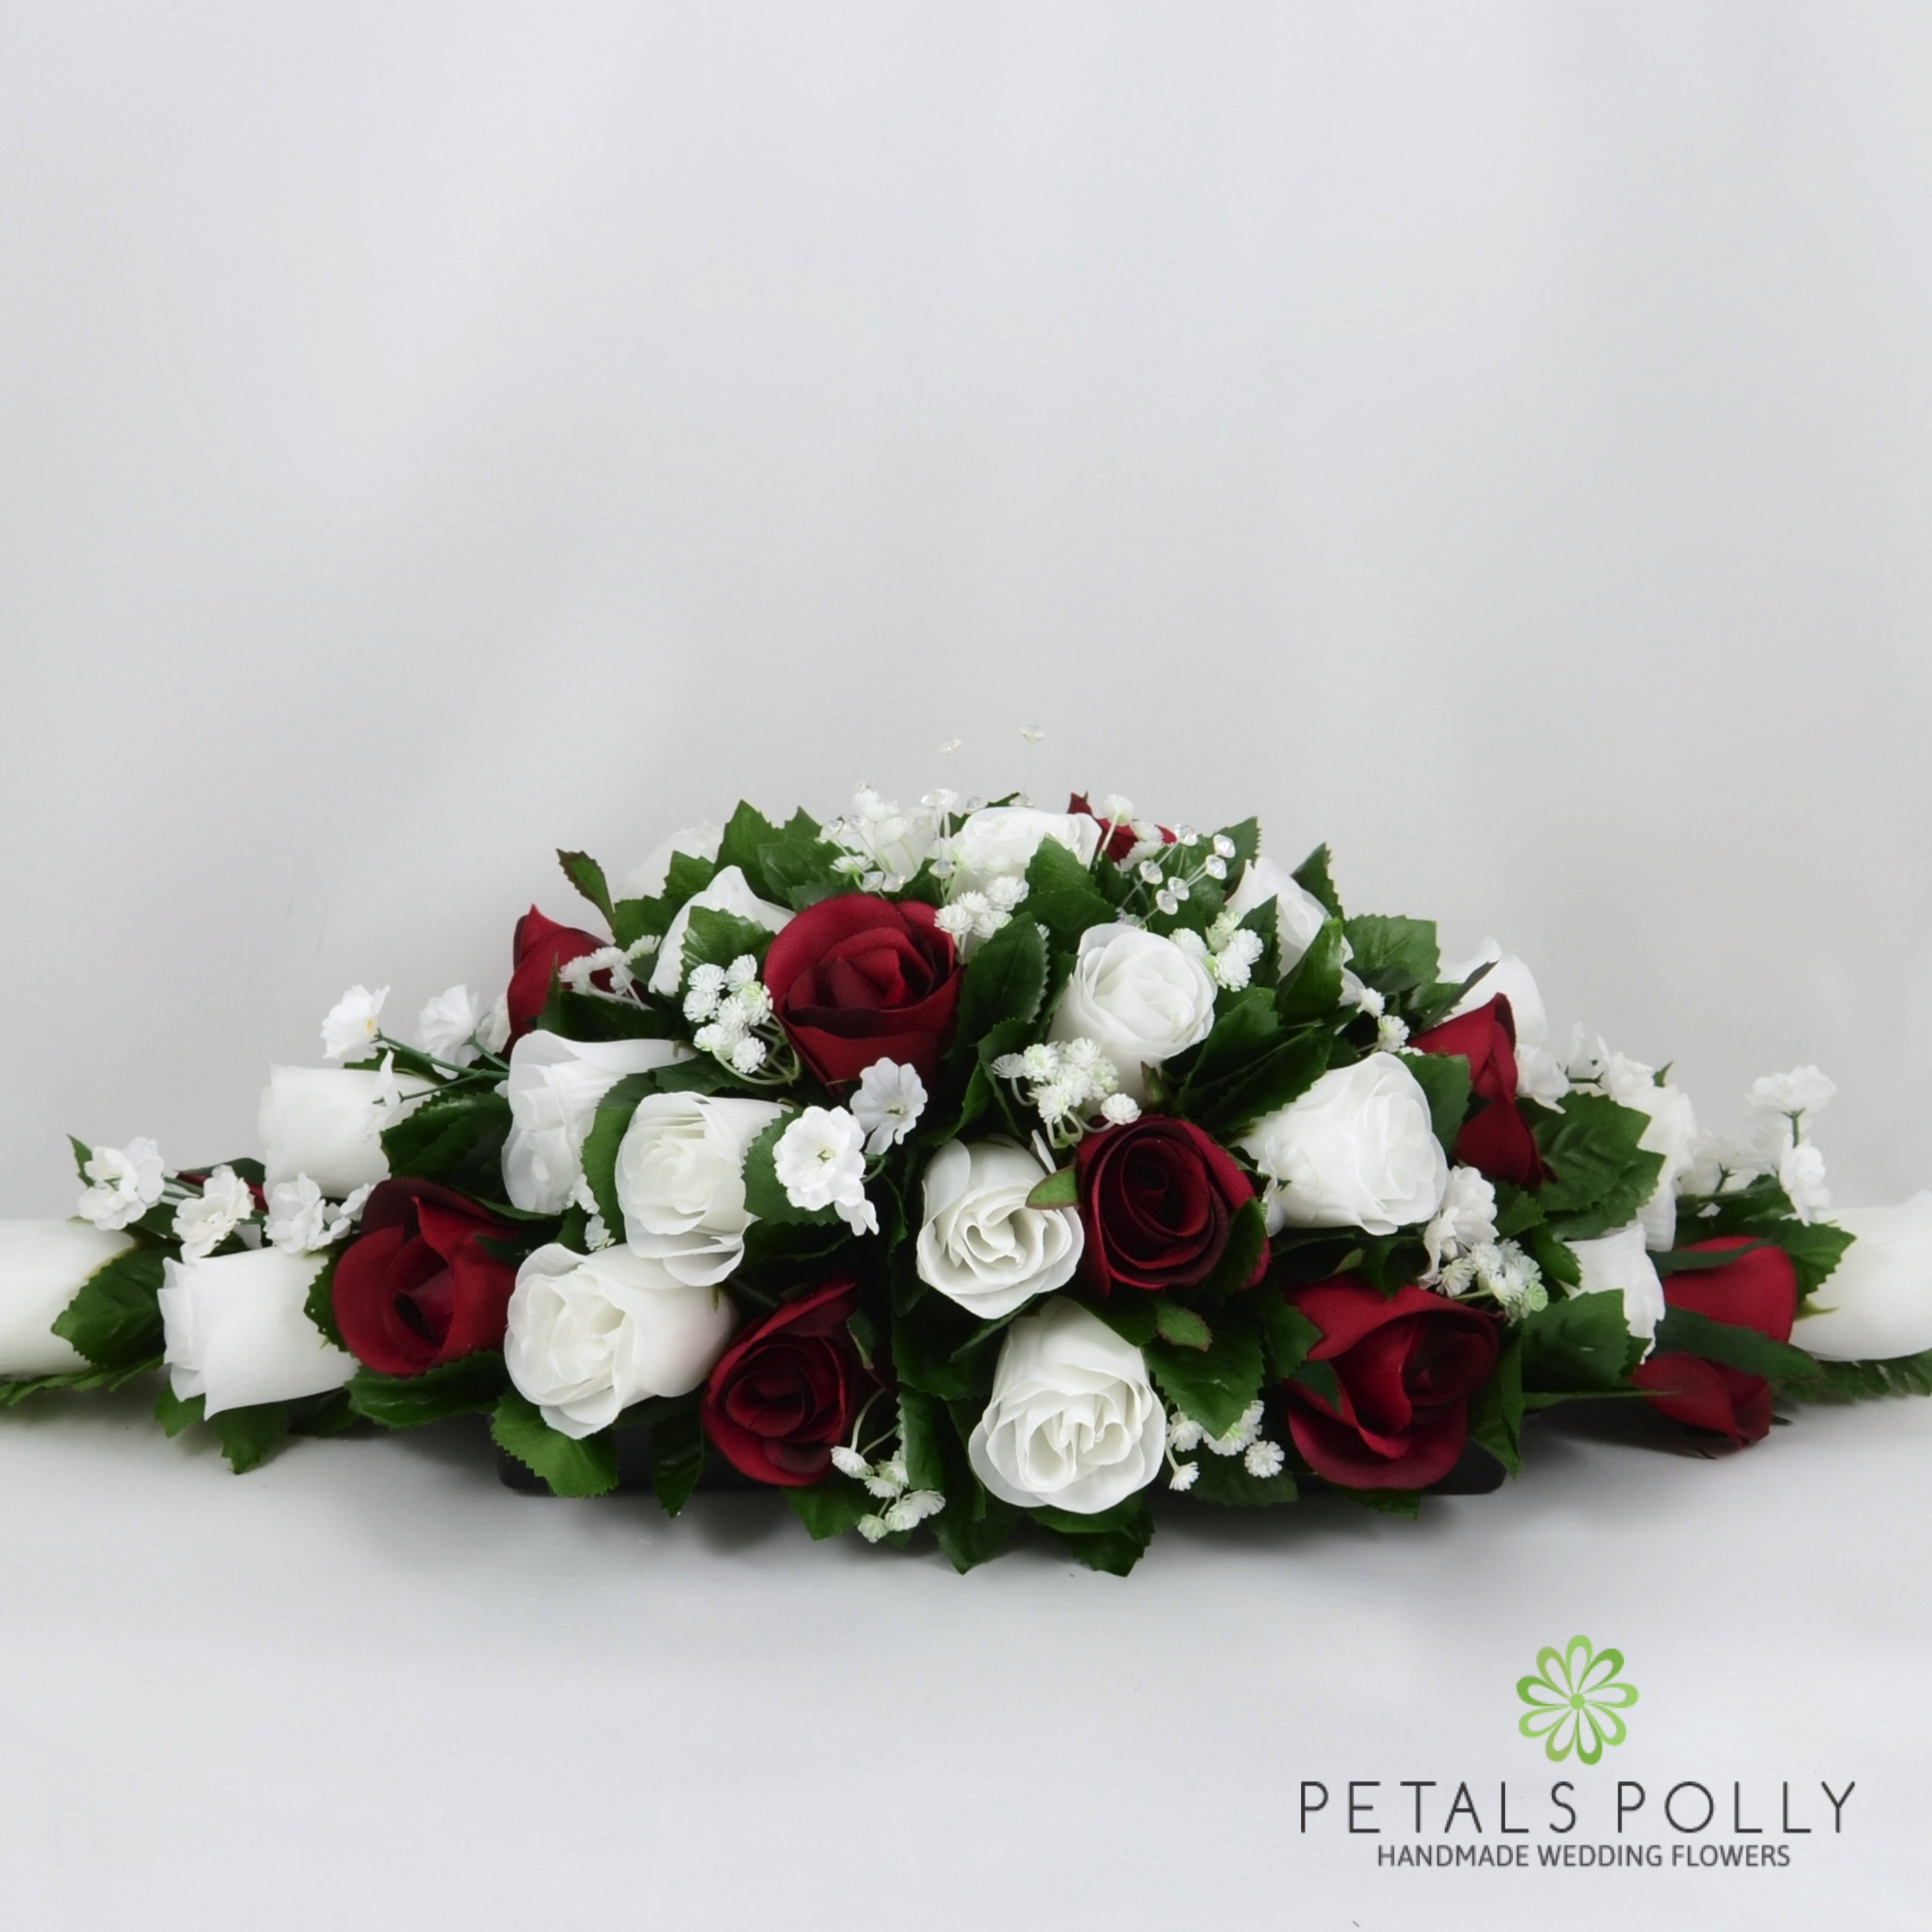 Burgundy white rose top table decoration burgundy white rose top table decoration mightylinksfo